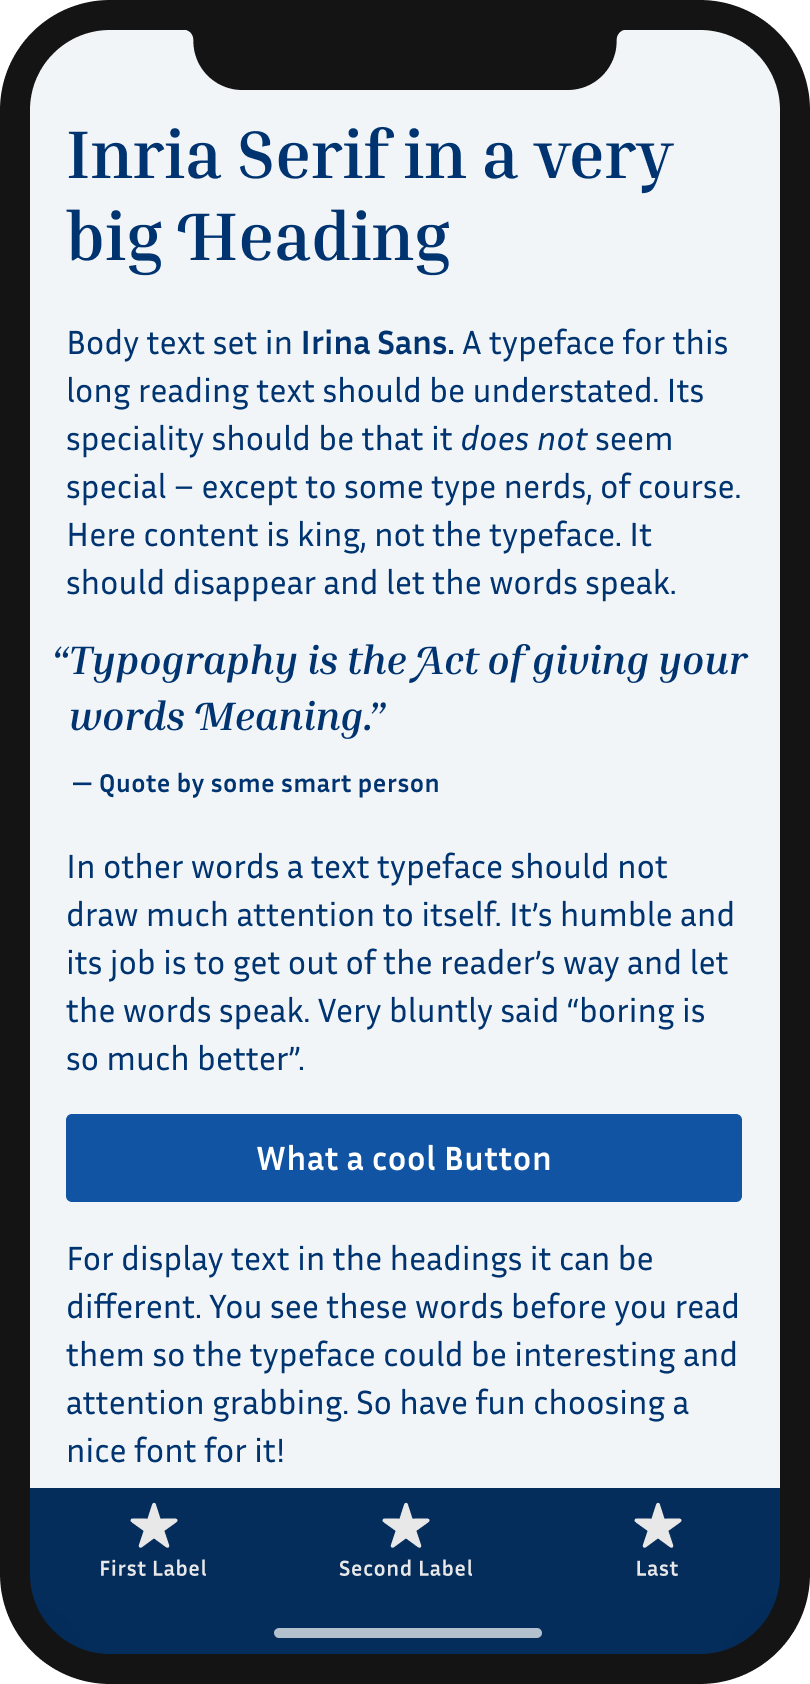 The typeface Irina Serif on a mobile phone in a headline and pull quote. The typeface Irina Sans in the body text, and the labels of a button and navigation.